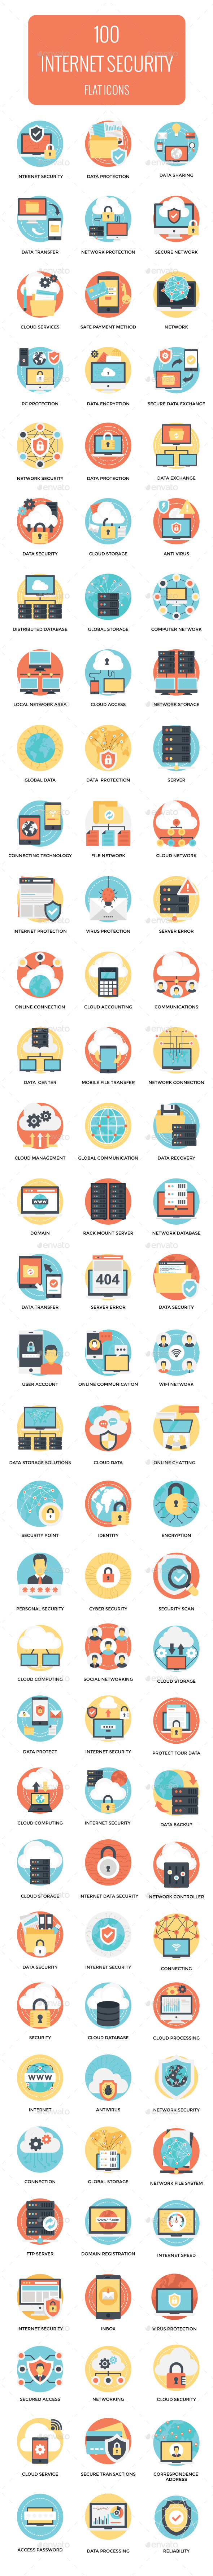 GraphicRiver 100 Flat Internet and Security Icons 21100714